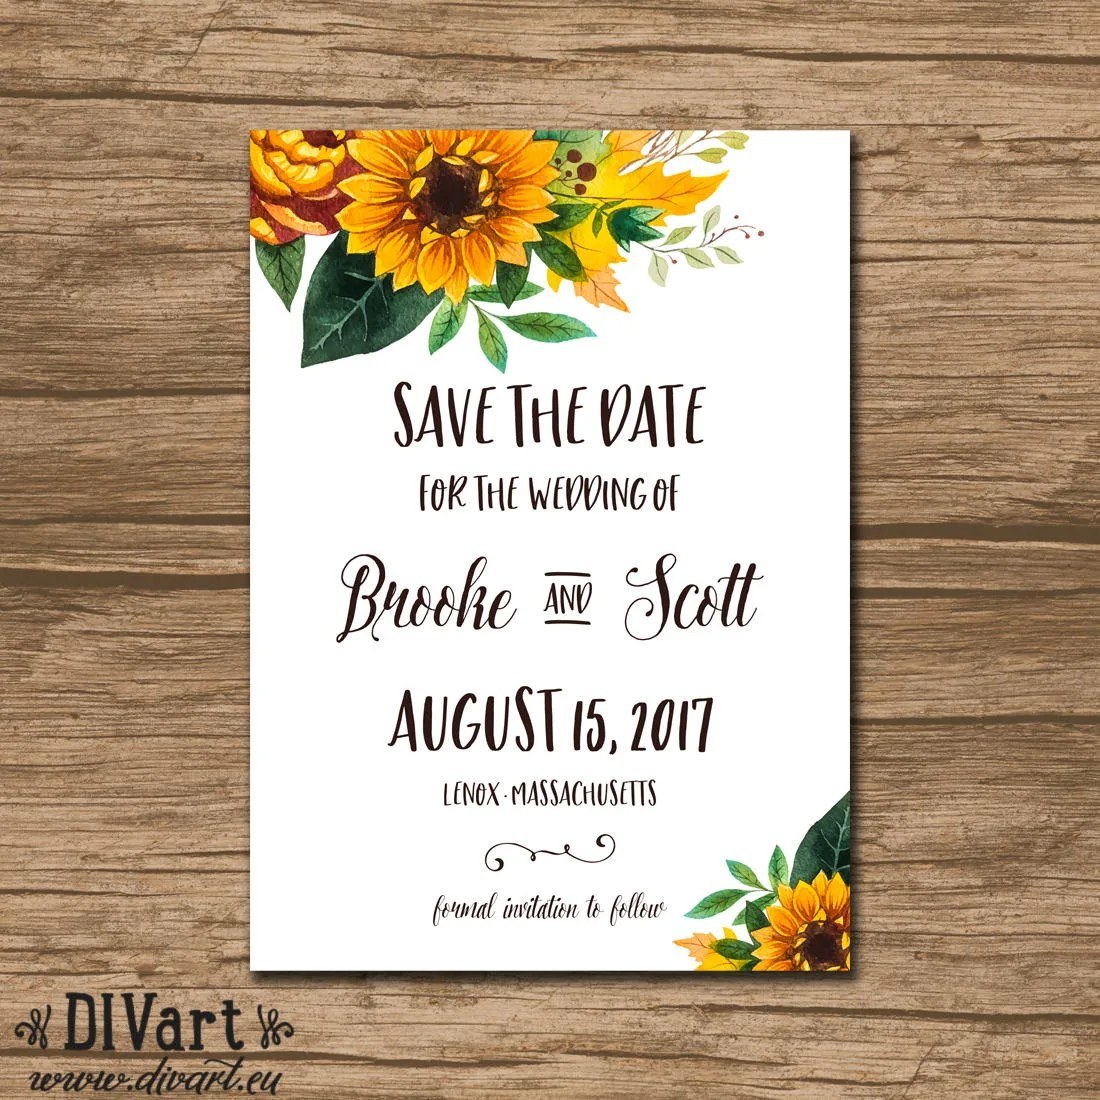 Save the Date Save Our Date Wedding Announcement PRINTABLE Etsy